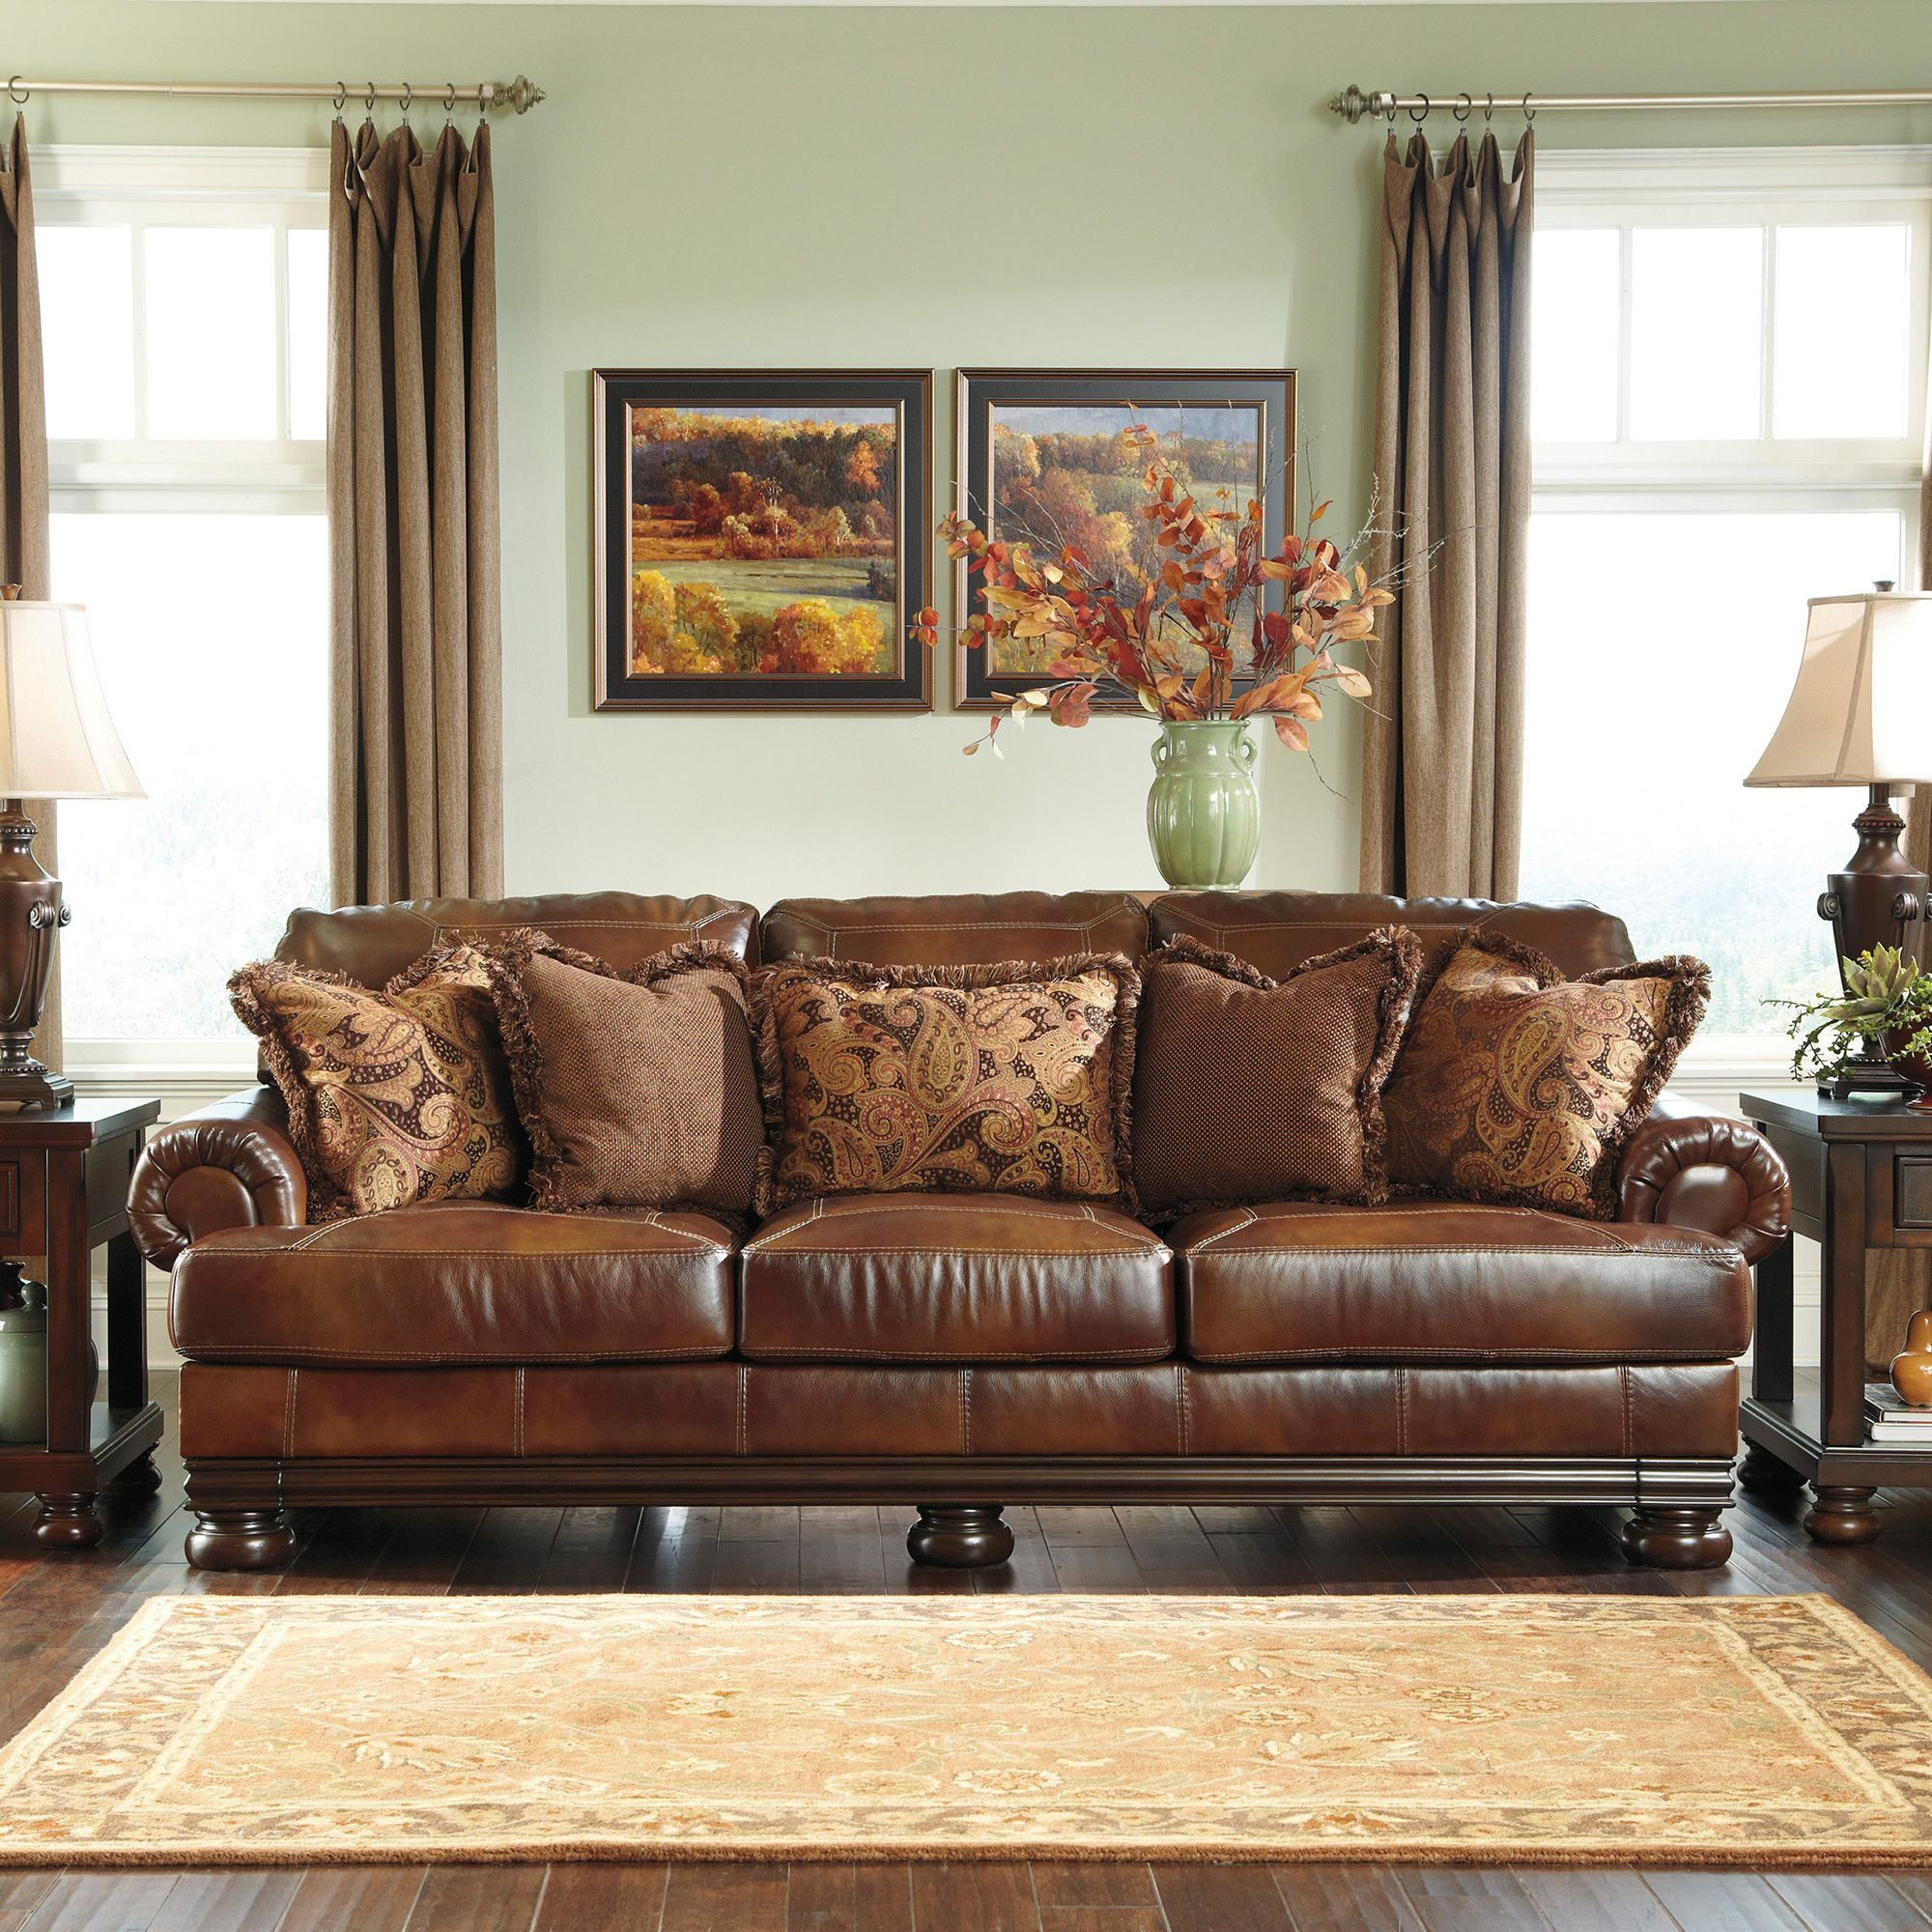 Sofa Cloth Online Shopping India Signature Designs By Ashley 39hutcherson 39 Harness Brown